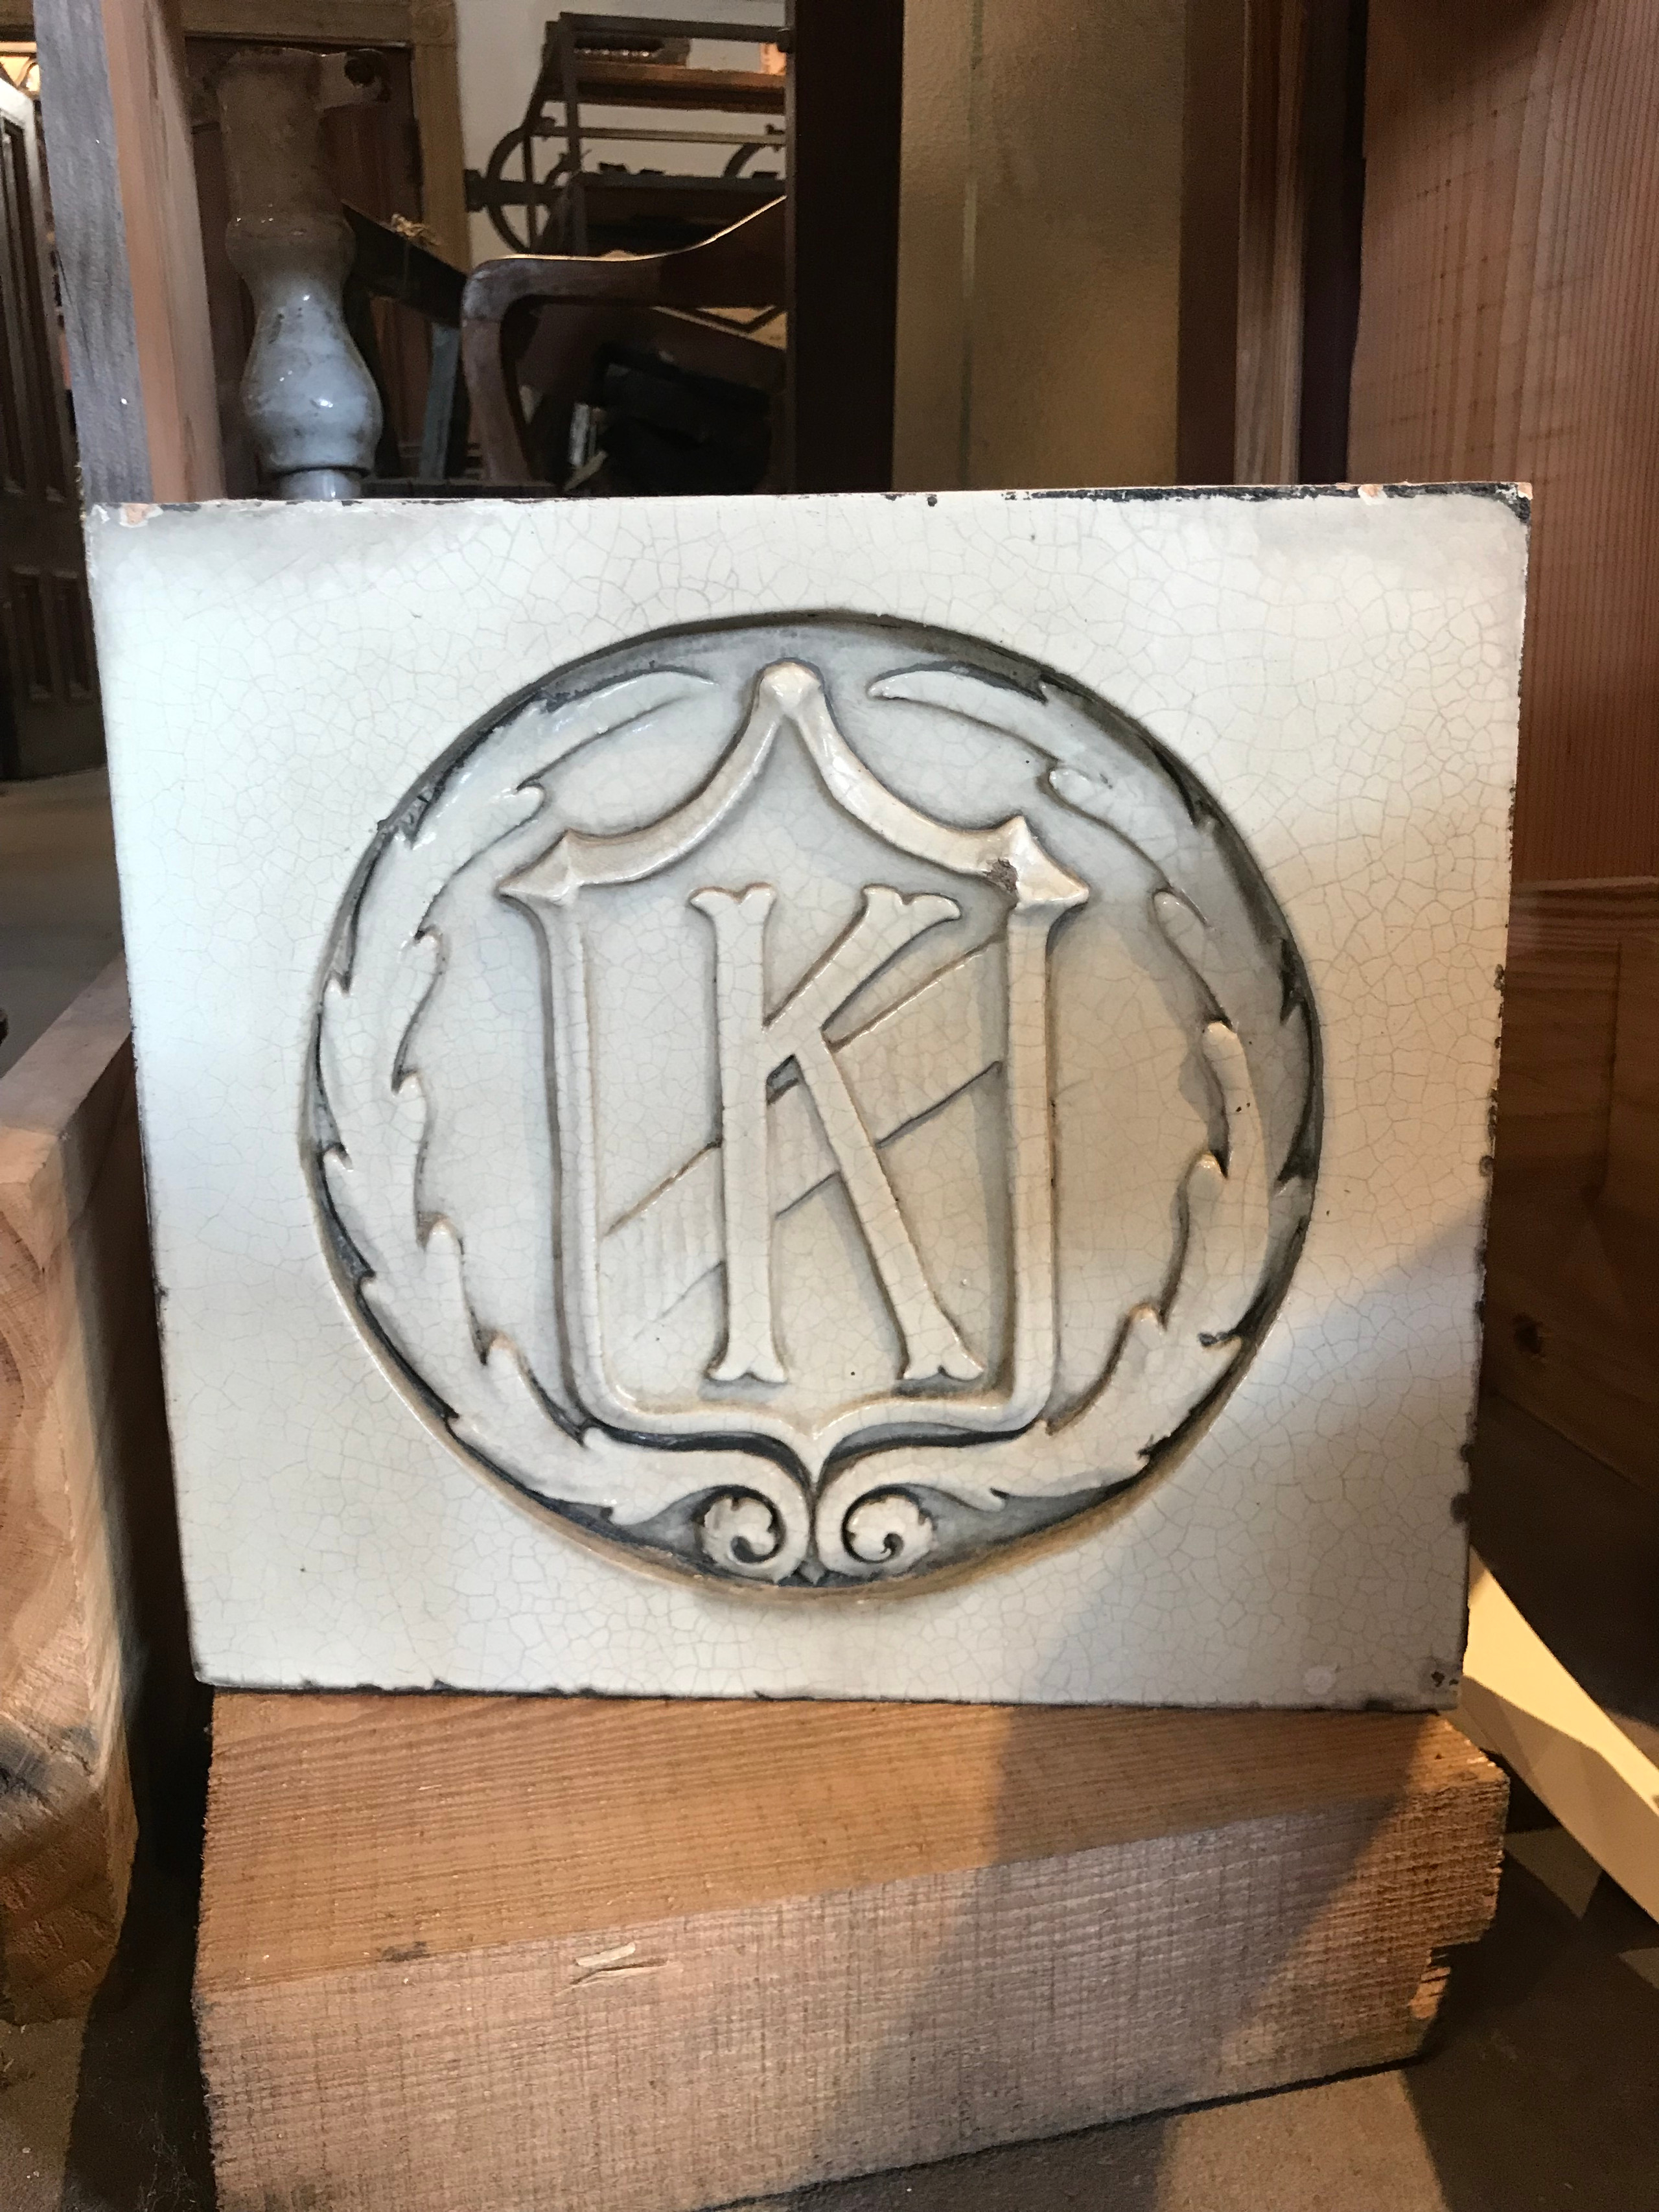 Cast terra cotta block with the initial K for Kingsland Movie Theatre.